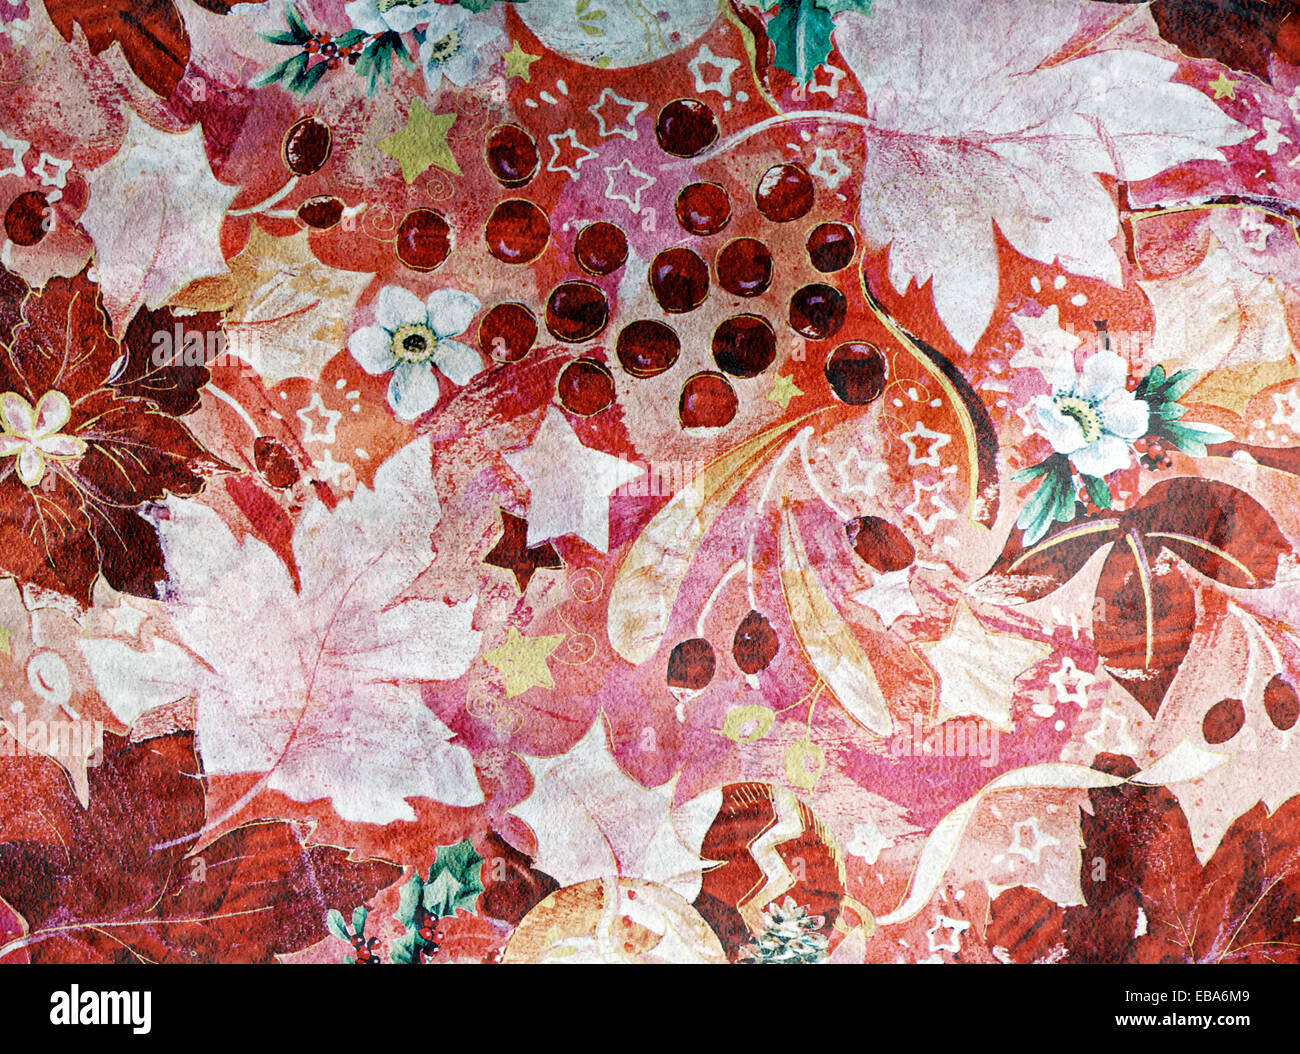 Autumn Or Fall Wallpaper Pattern With Colorful Leaves Berries And Flowers In A Busy Swirling Vintage Style